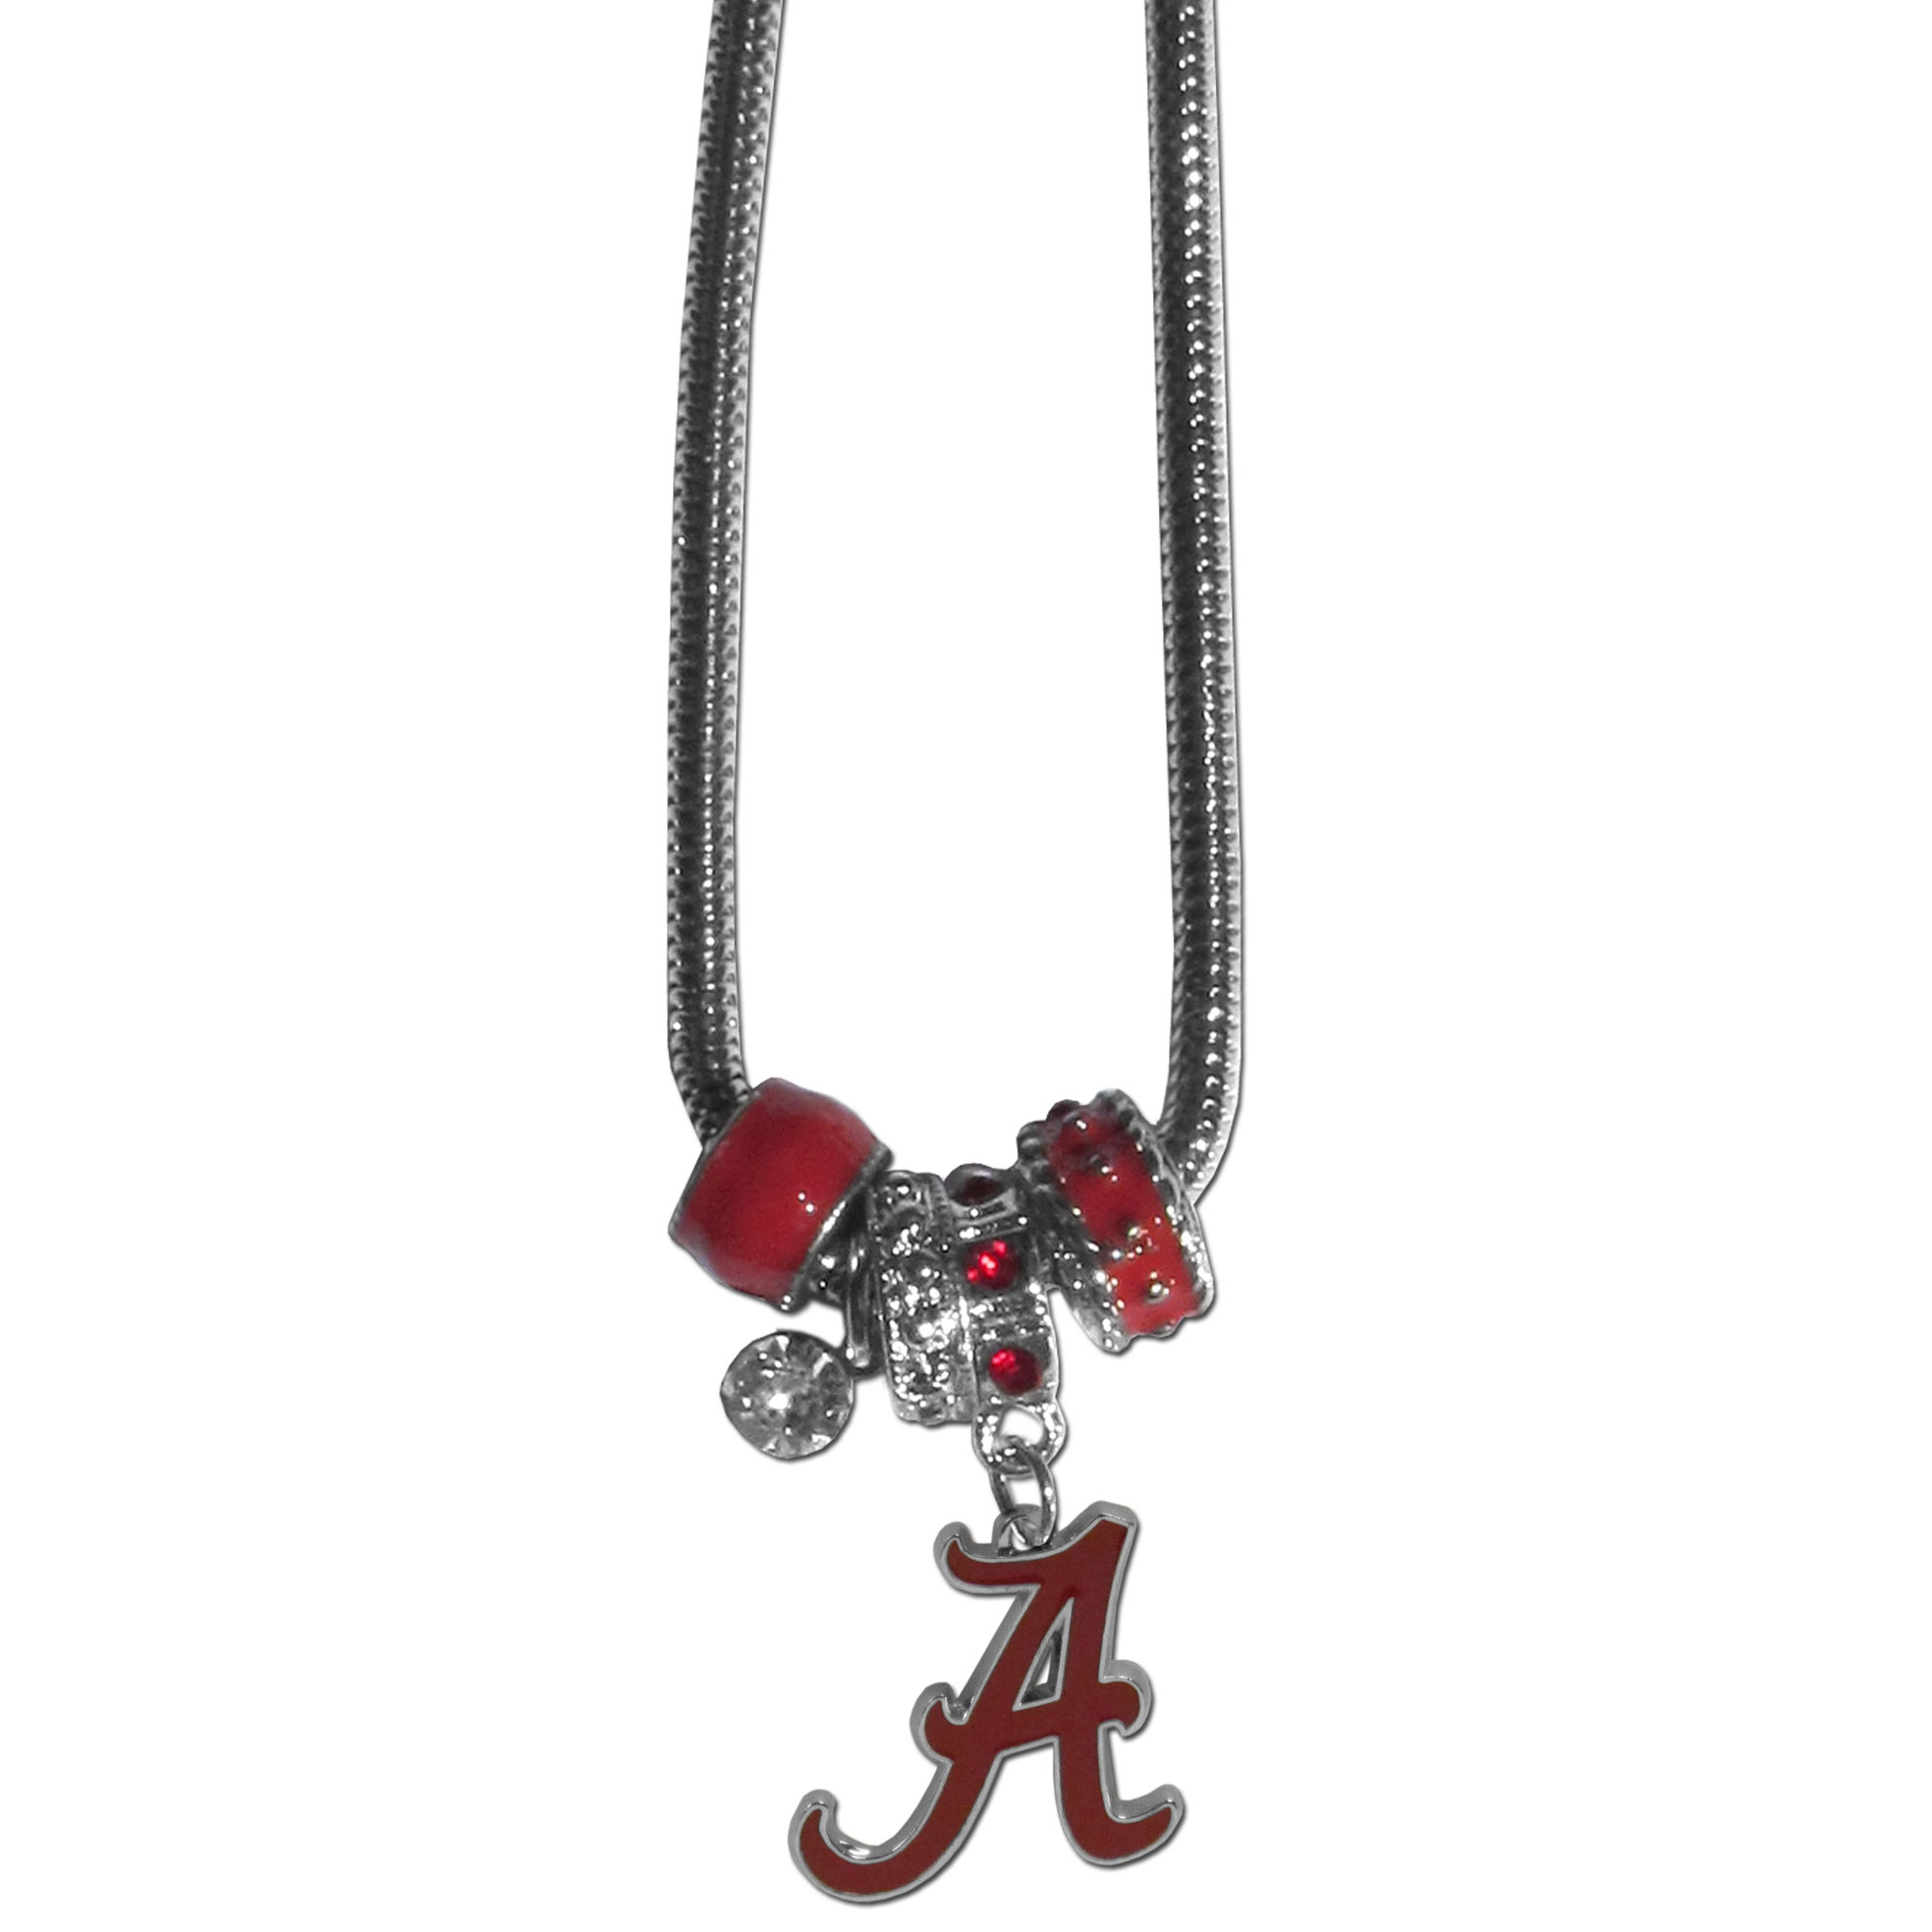 Alabama Crimson Tide Euro Bead Necklace - We have combined the wildly popular Euro style beads with your favorite team to create our Alabama Crimson Tide bead necklace. The 18 inch snake chain features 4 Euro beads with enameled team colors and rhinestone accents with a high polish, nickel free charm and rhinestone charm. Perfect way to show off your team pride.